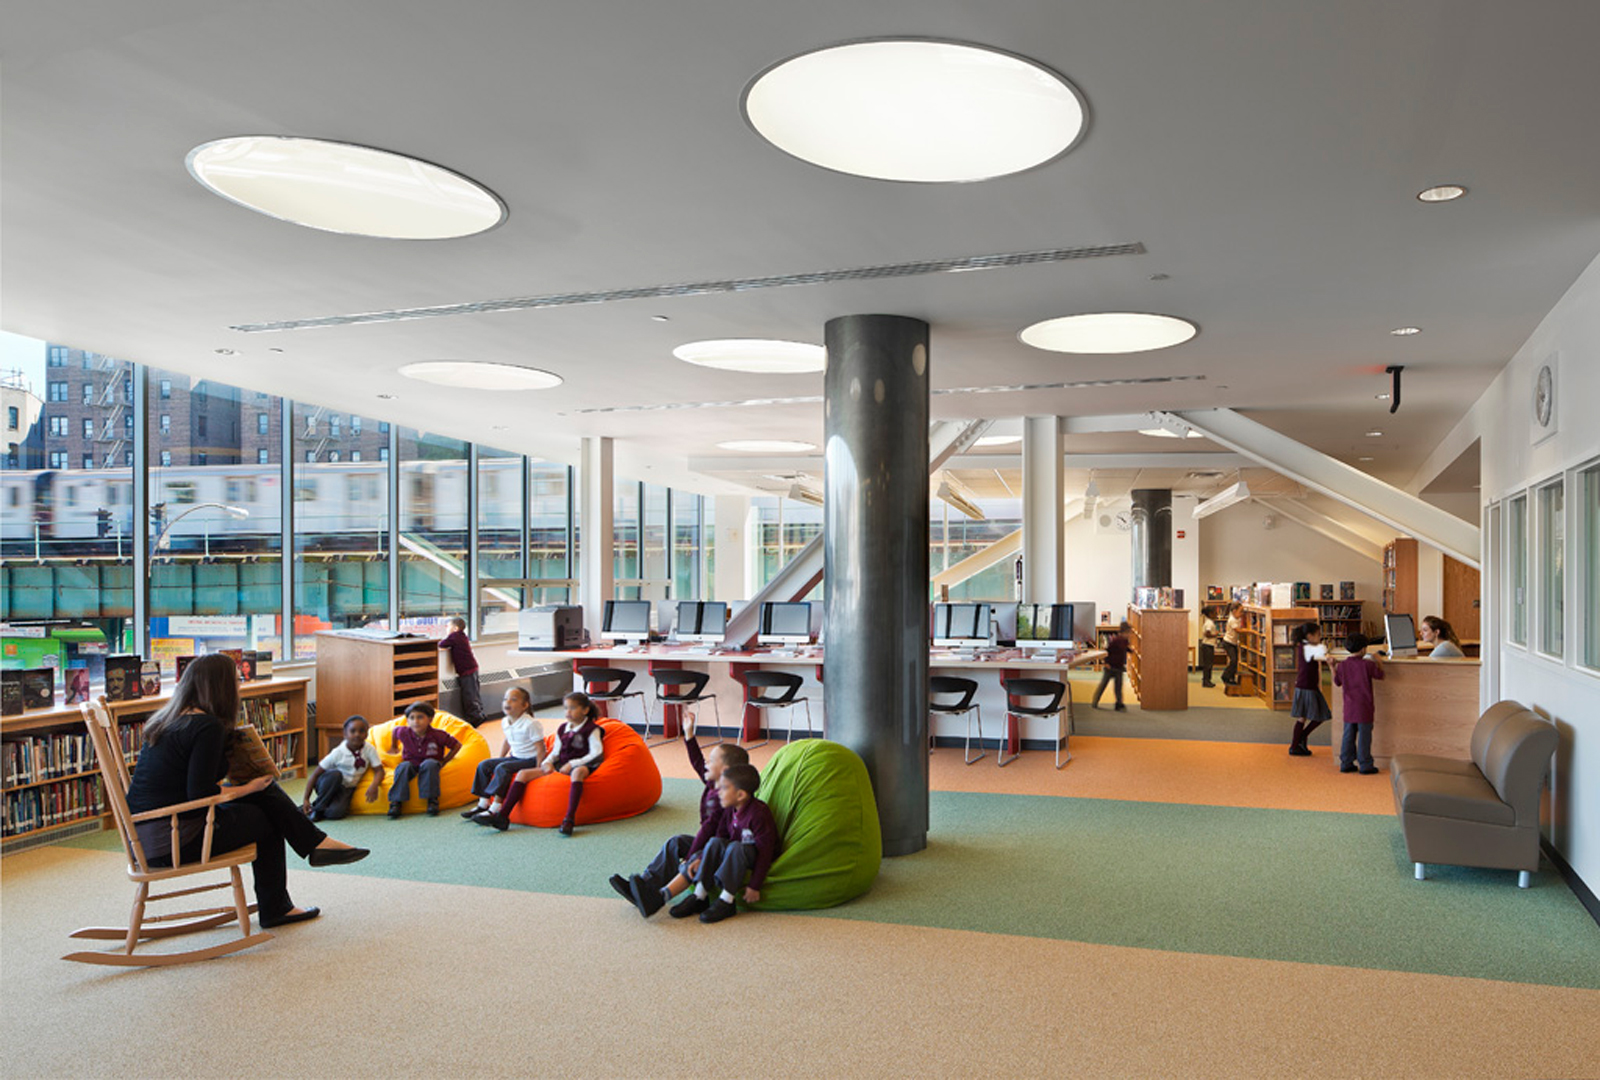 Community Architect Cities In Search Of The 21st Century School